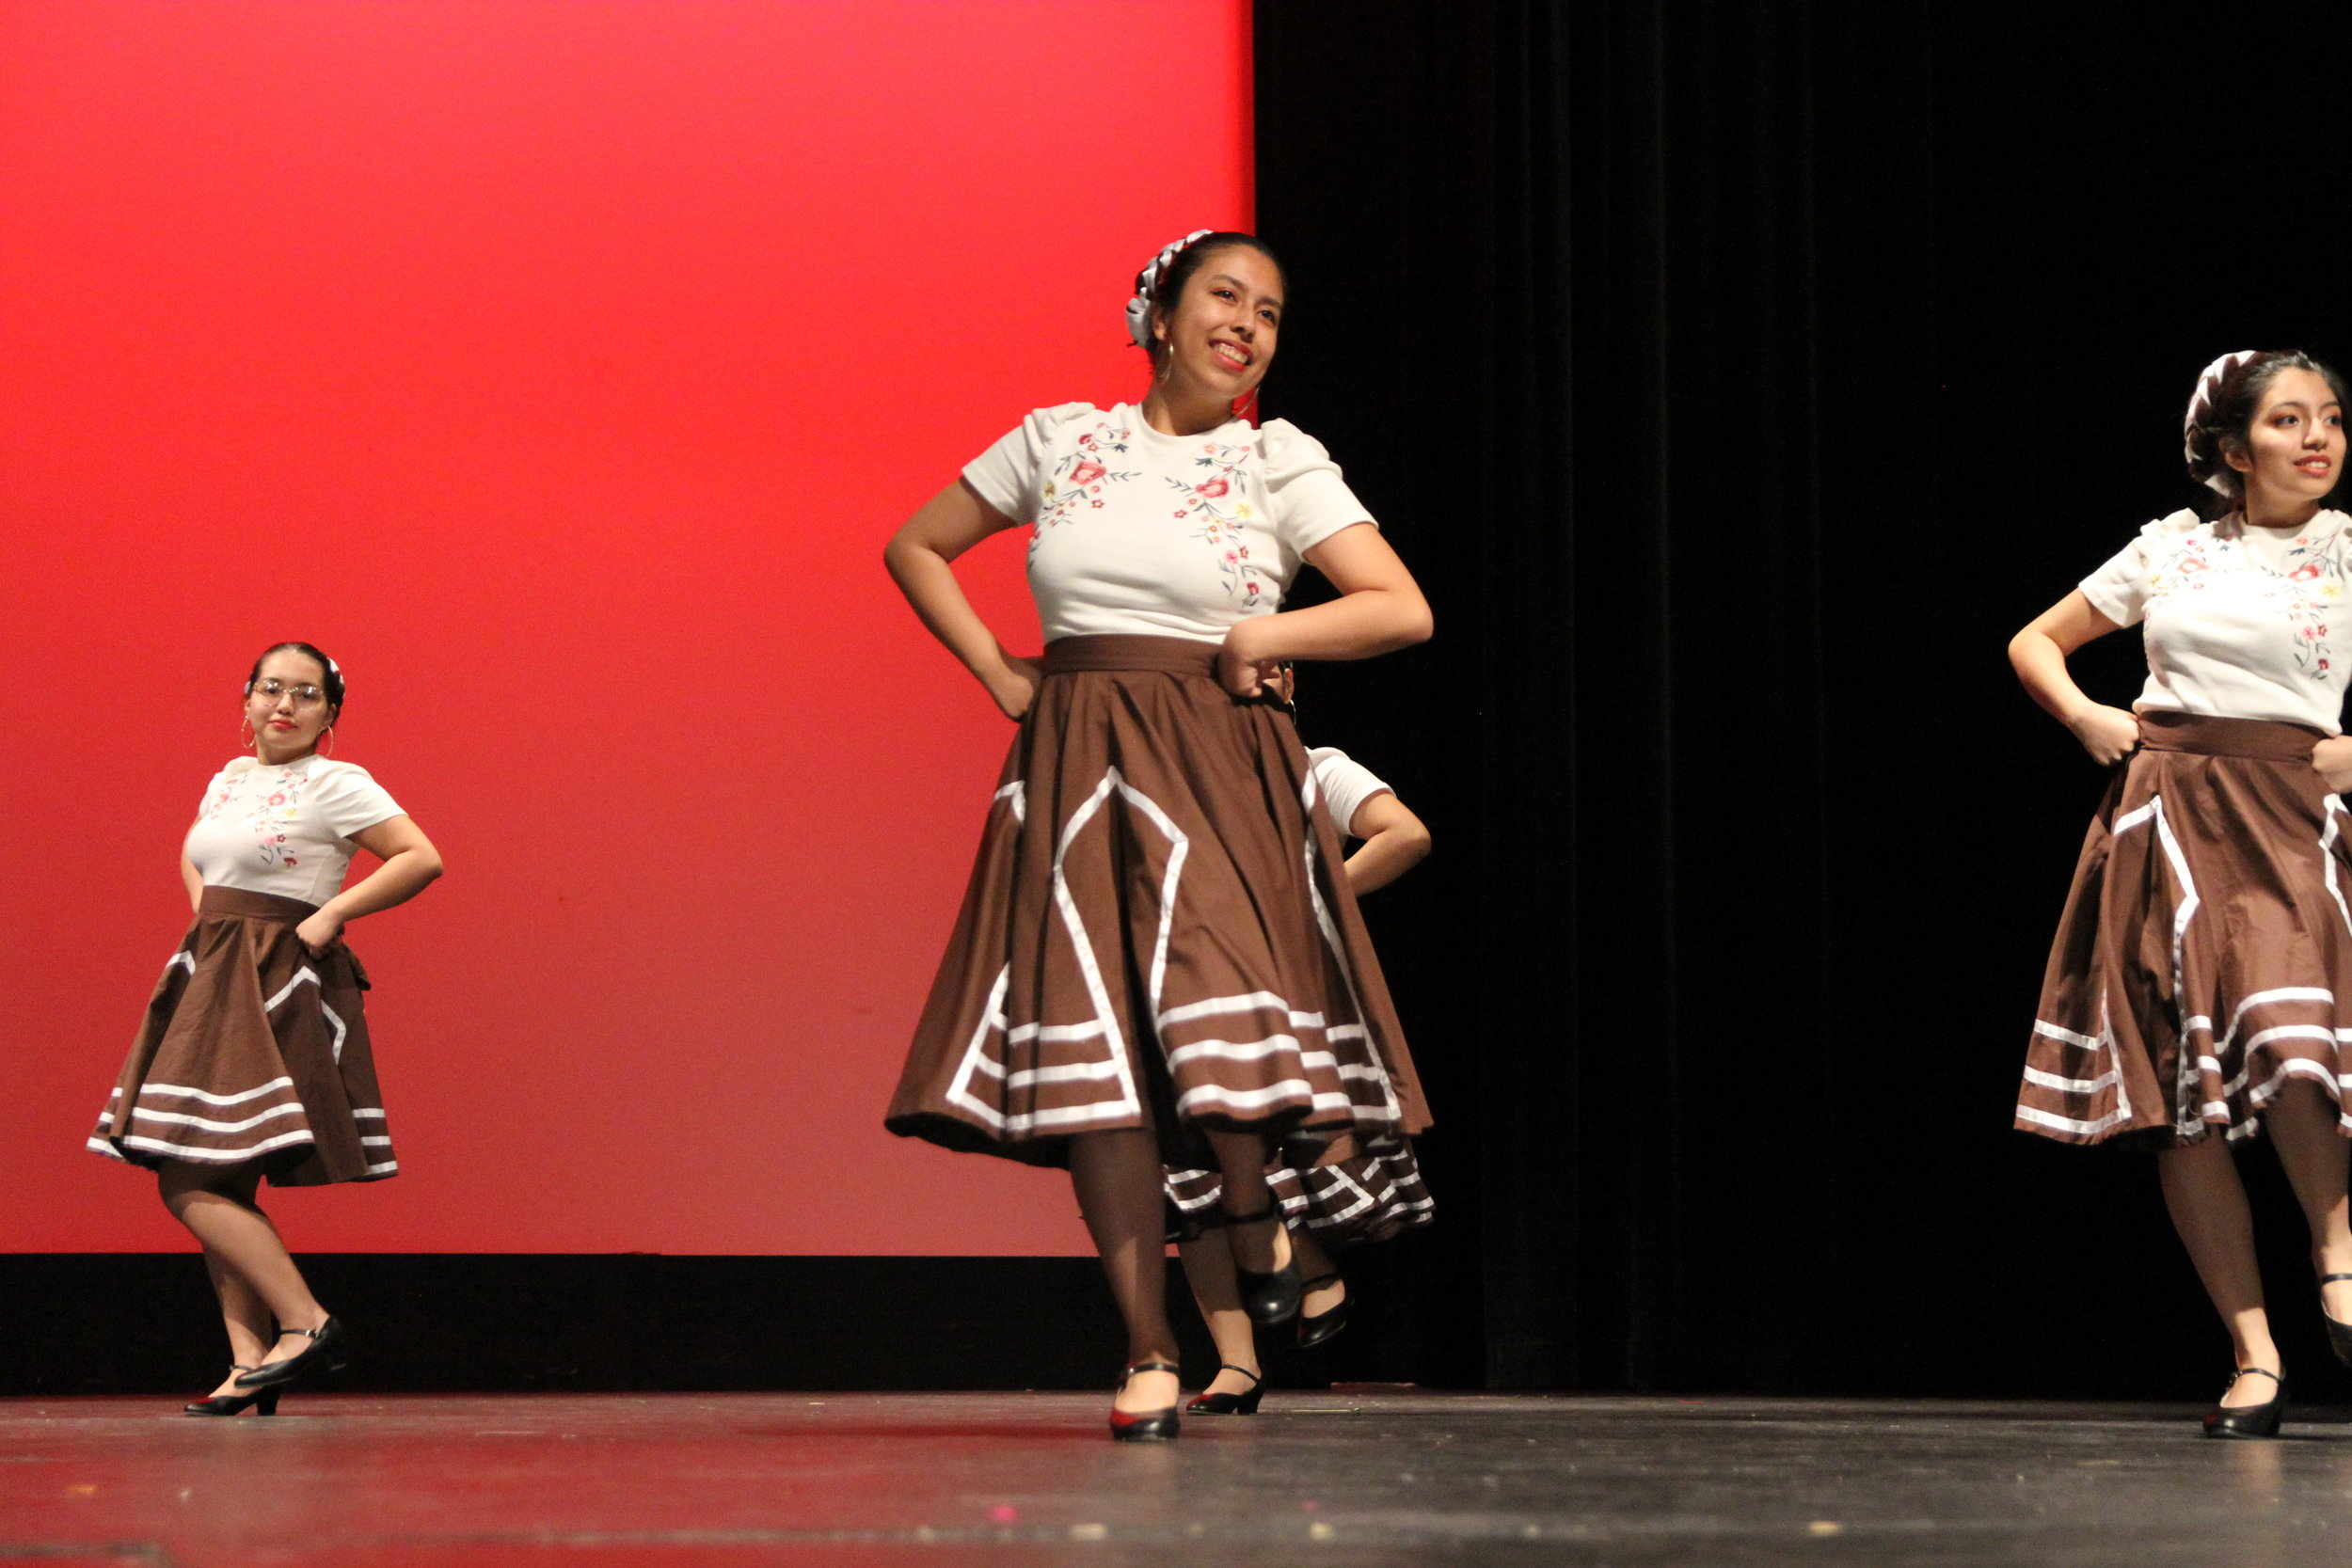 Brianna Gonzalez, Adv. 900, smiles at the crowd as she begins to turn in her classic Mexican attire